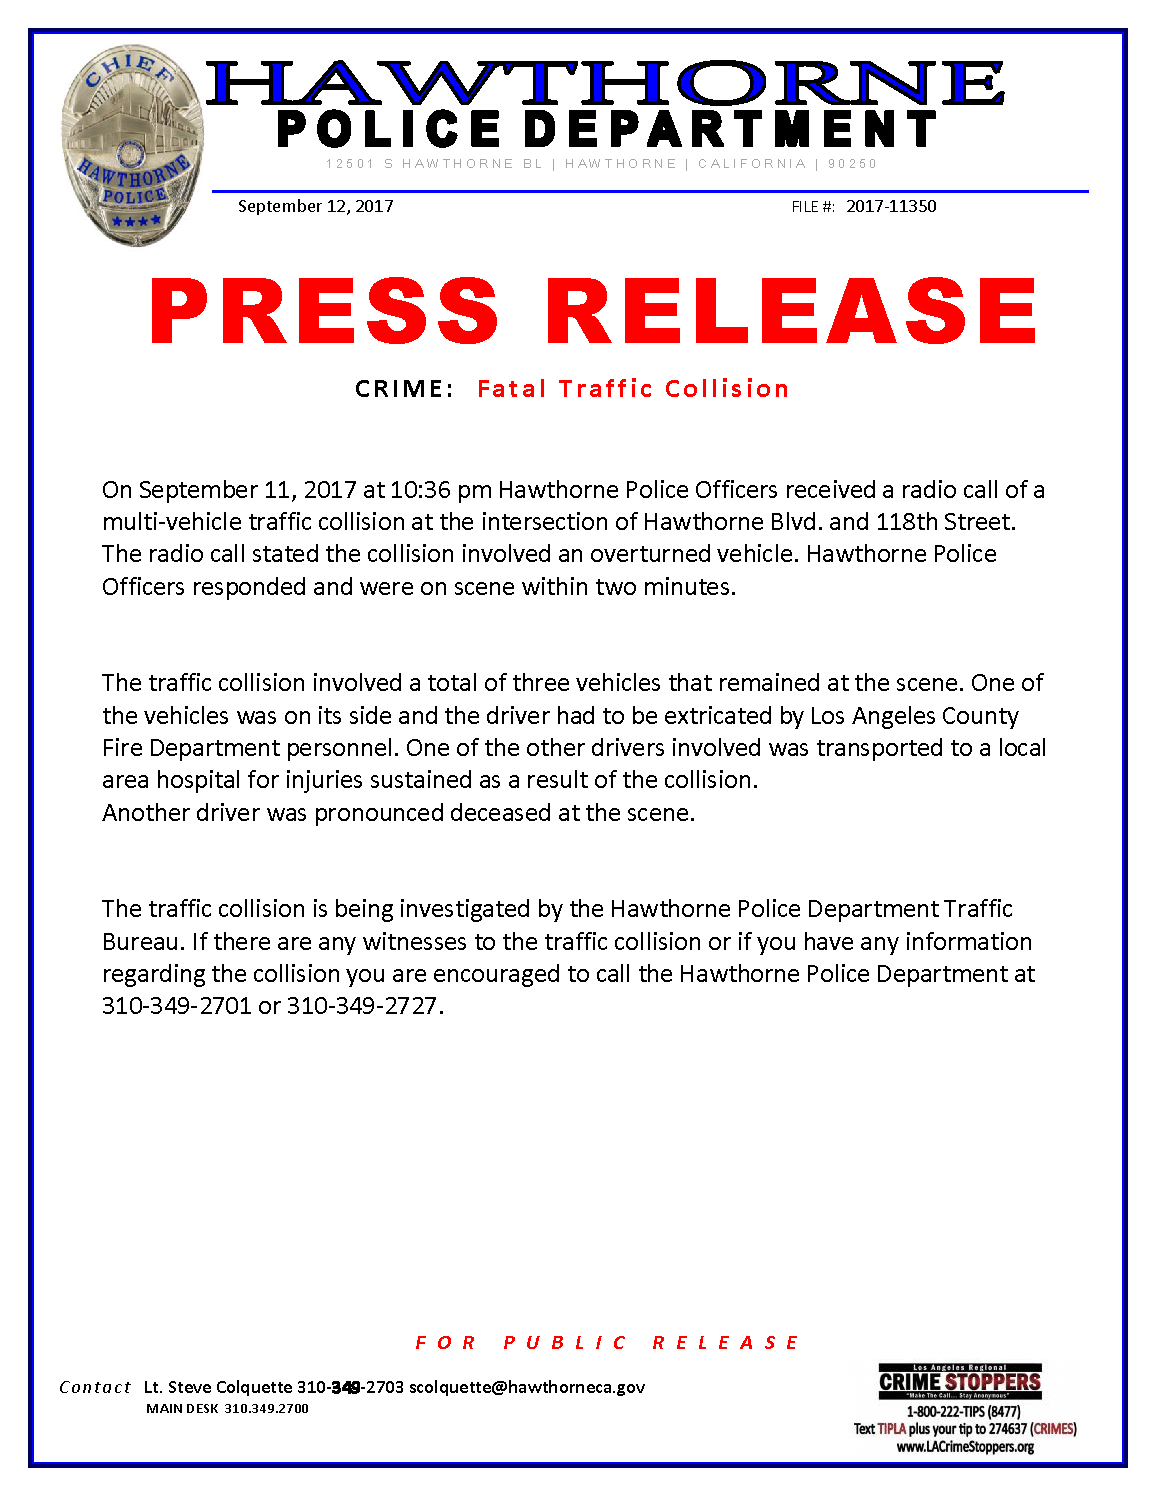 Press Release 17-11350.png